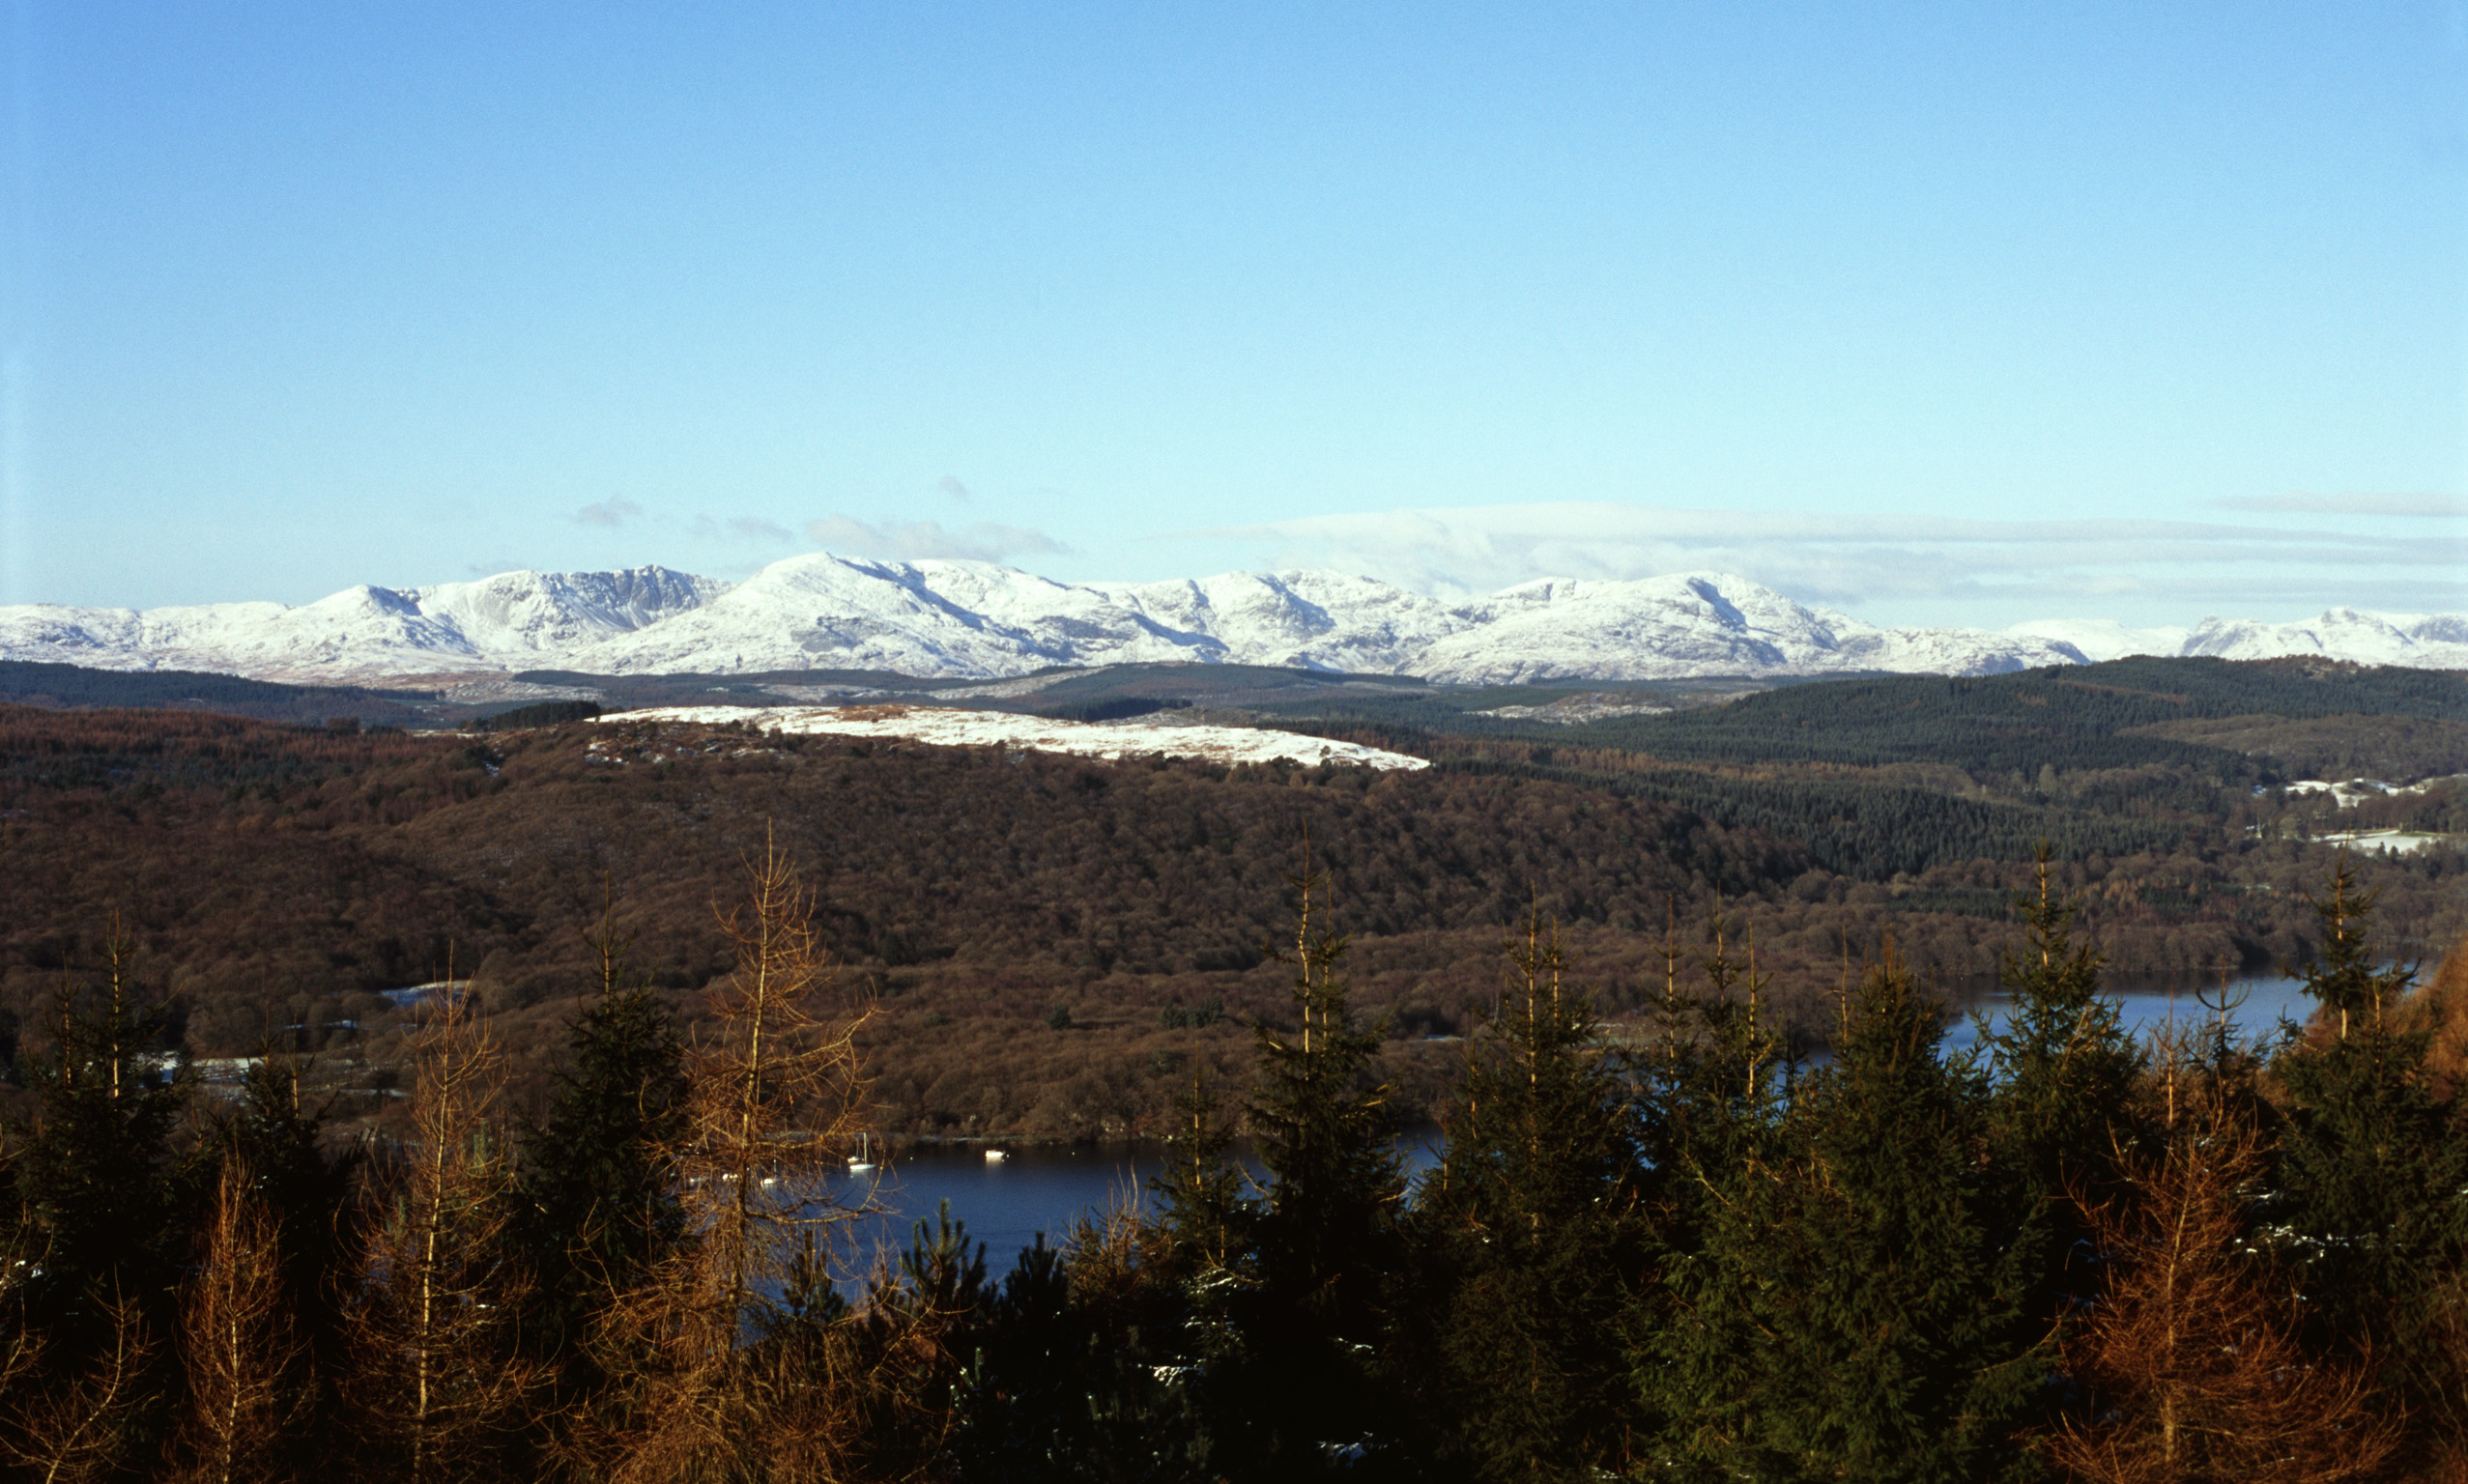 panoramic view of the hills around lake windermere with peaks capped by winter snow